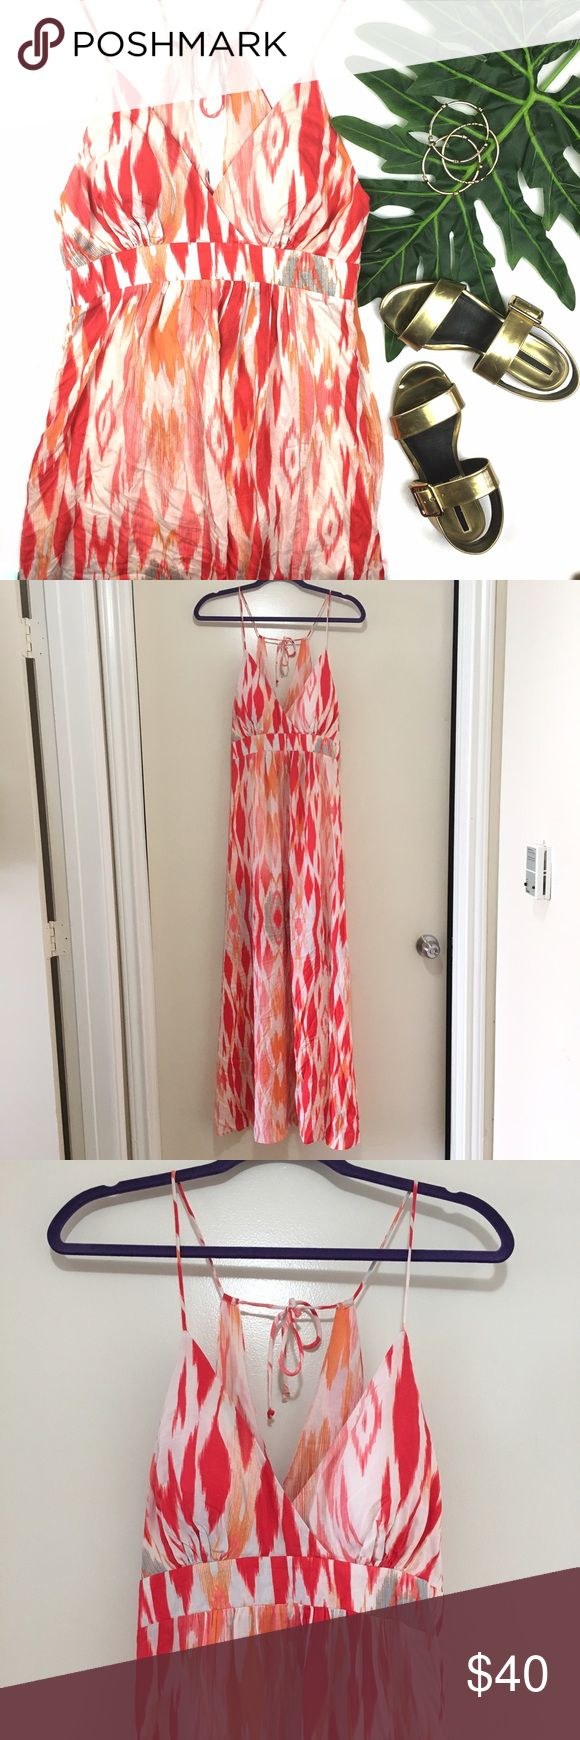 Green Dragon Red & Pink Tie Dye Slit Maxi Dress Stunning dress. It is perfect to take on any beach vacation. You can wear this over your swimsuit or wear this baby for a romantic dinner at the beach. Features an all over tie dye print in pink, orange and red on a white background, padded cups, tie at back, leg slit and enclosed zipper on the side. 100% rayon. Green Dragon Dresses Maxi